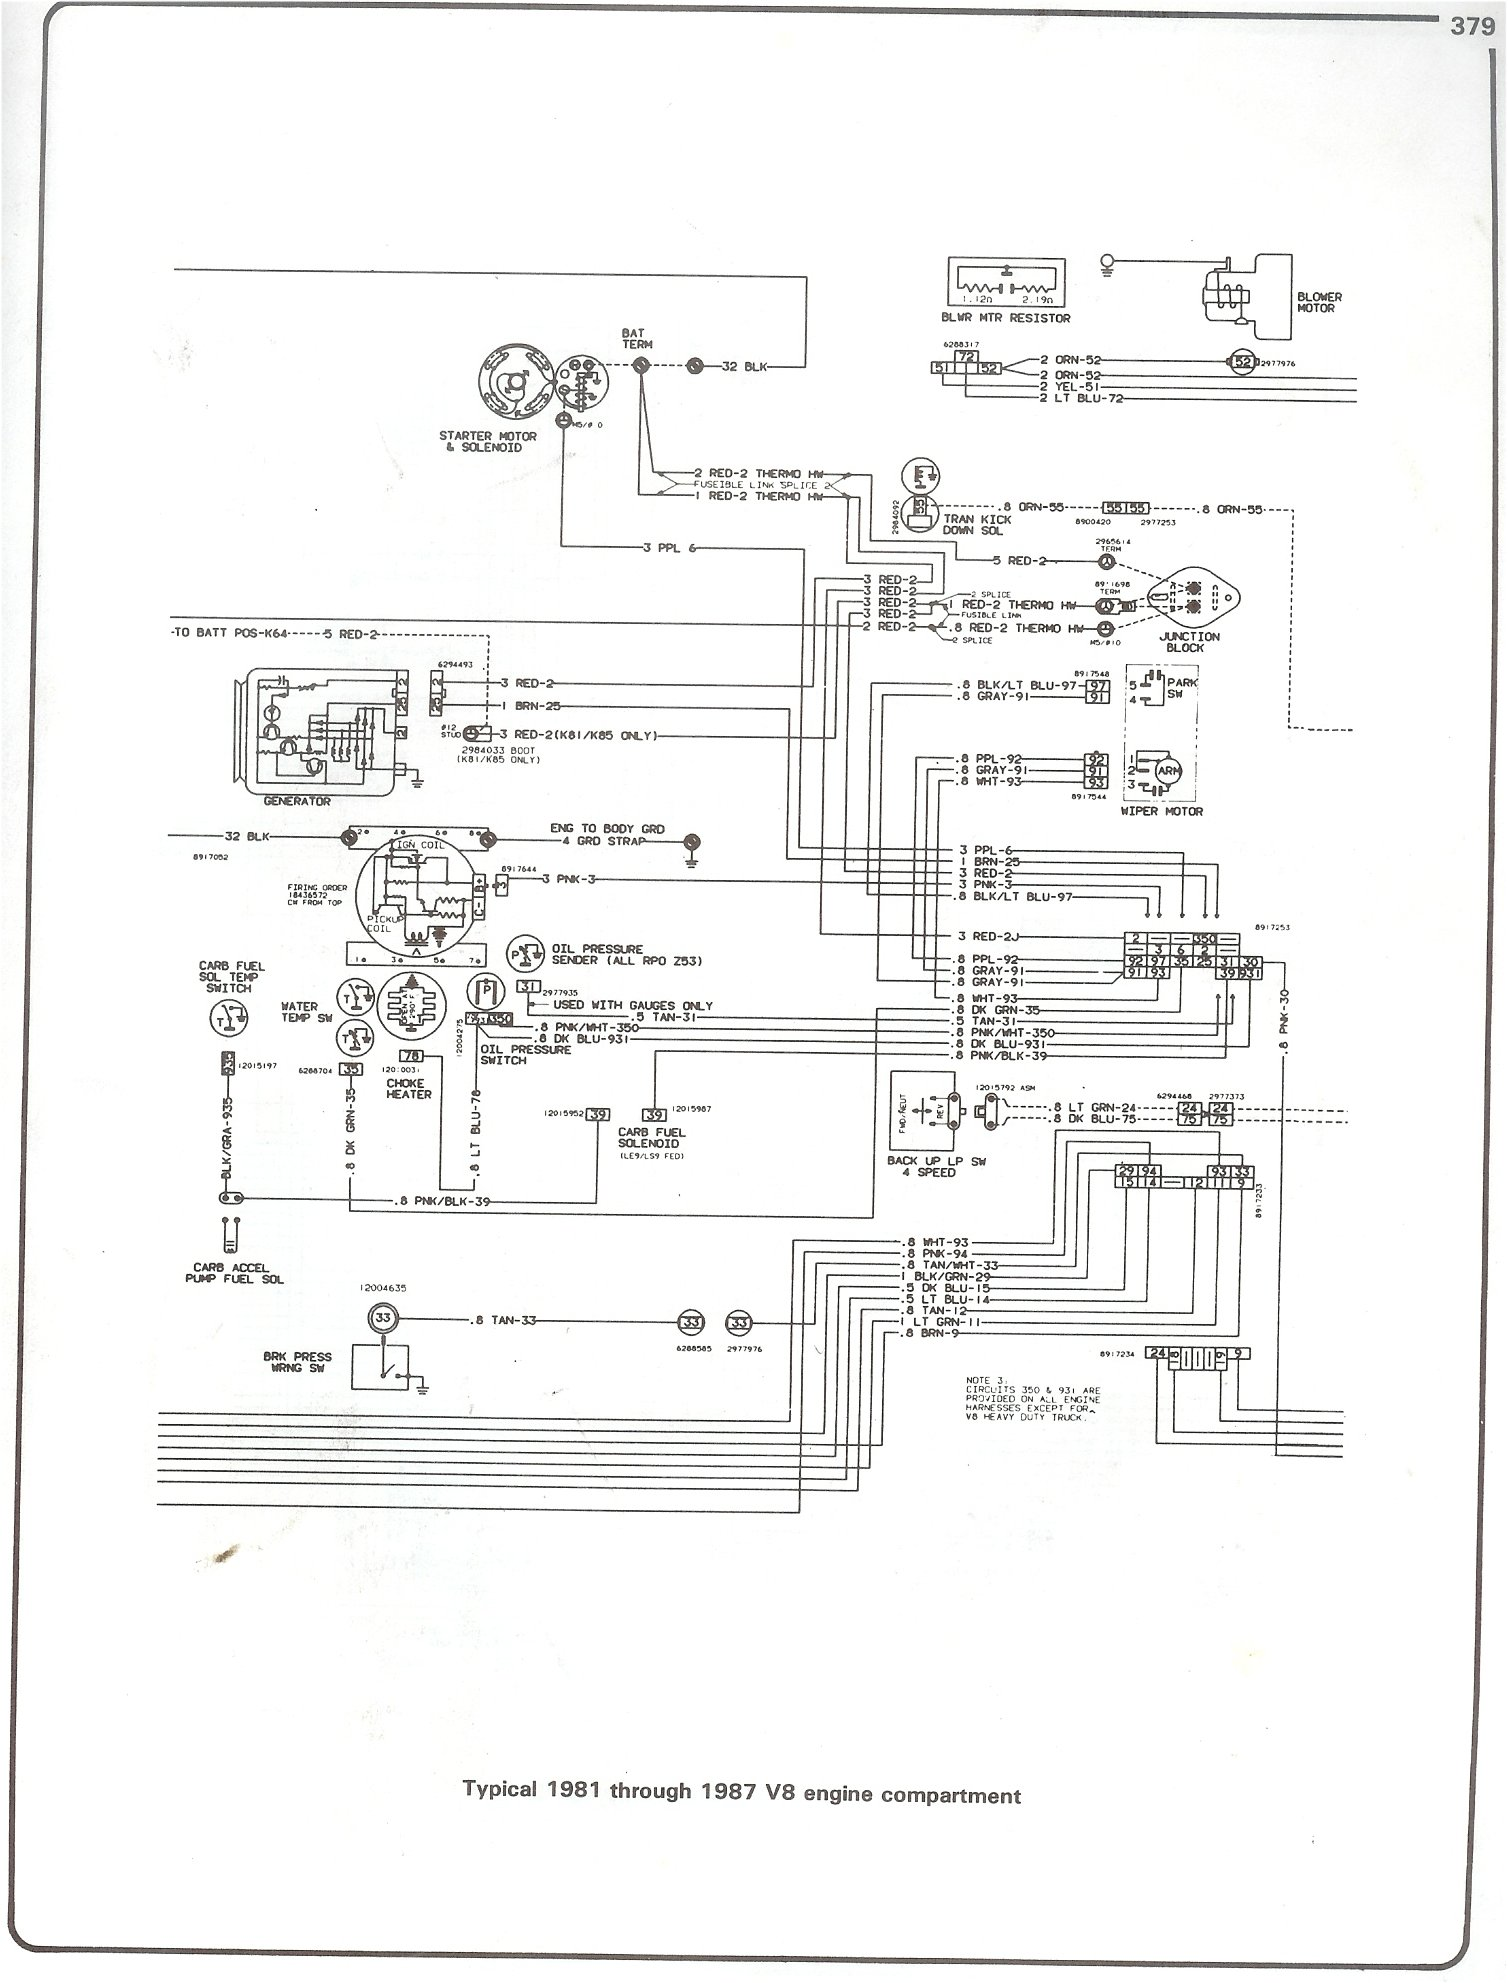 81 87_V8_engine complete 73 87 wiring diagrams wiring diagram for 1986 chevy p30 7.4l at bayanpartner.co